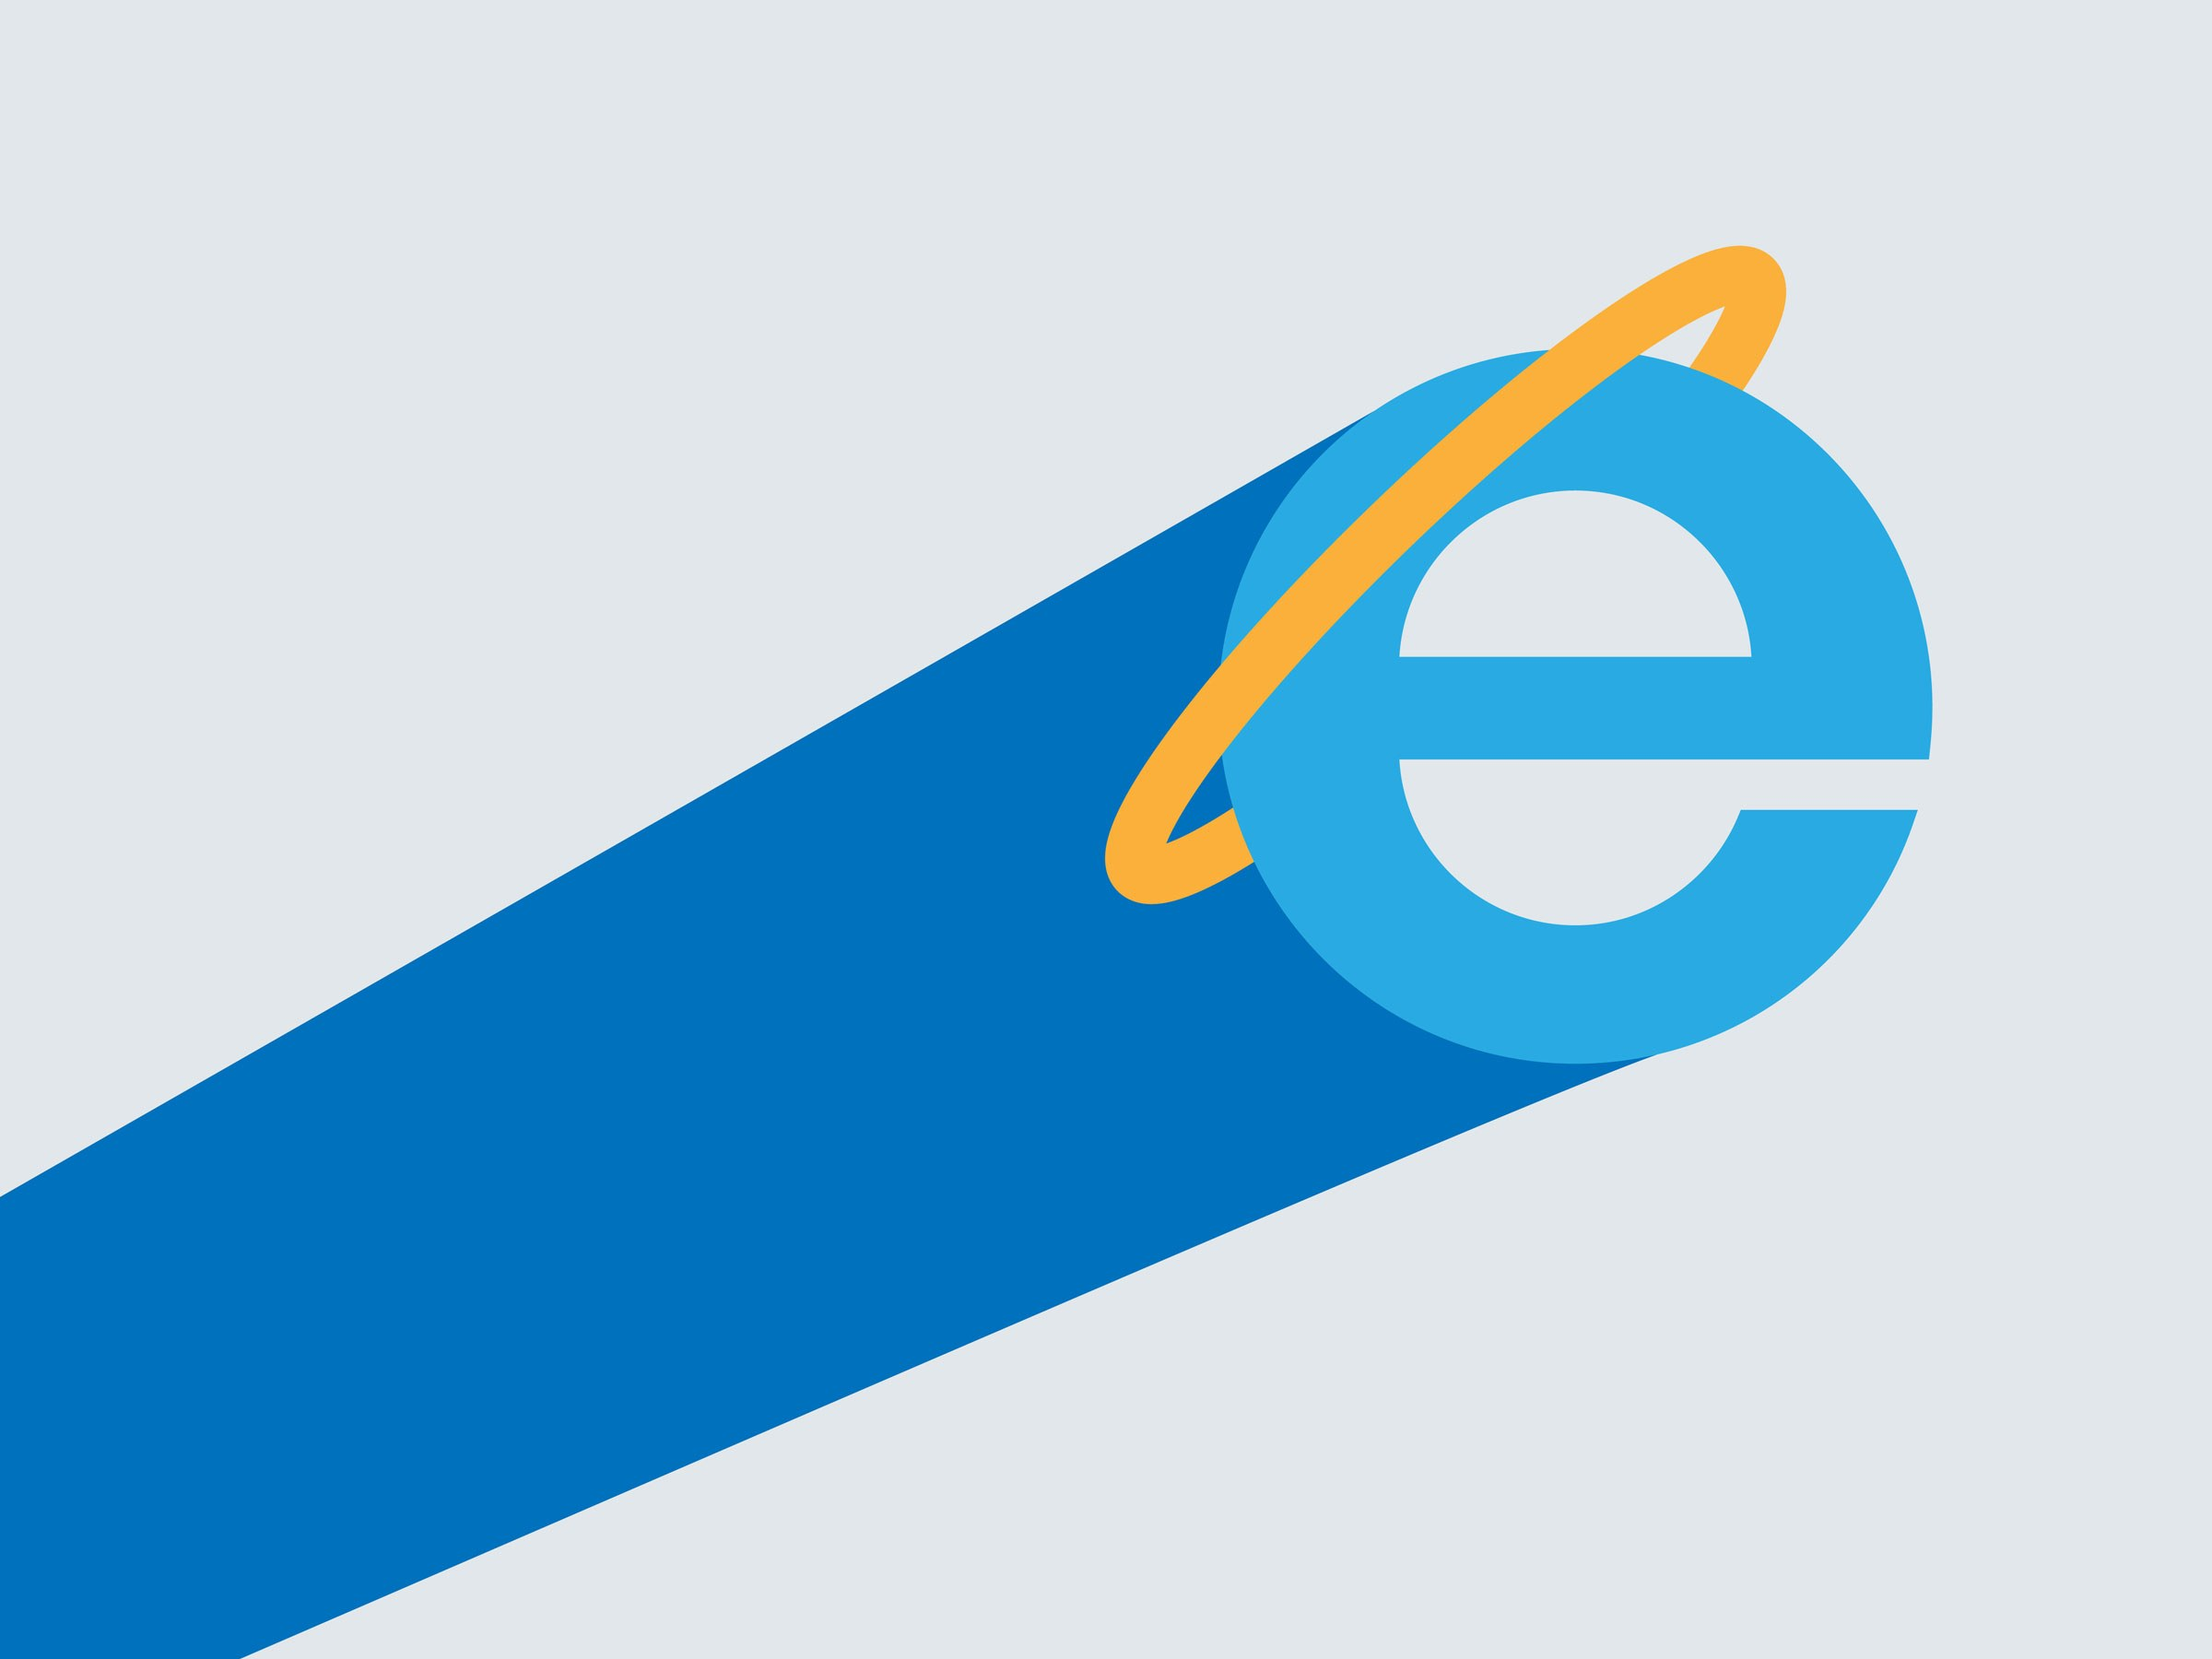 Internet-Explorer.jpeg